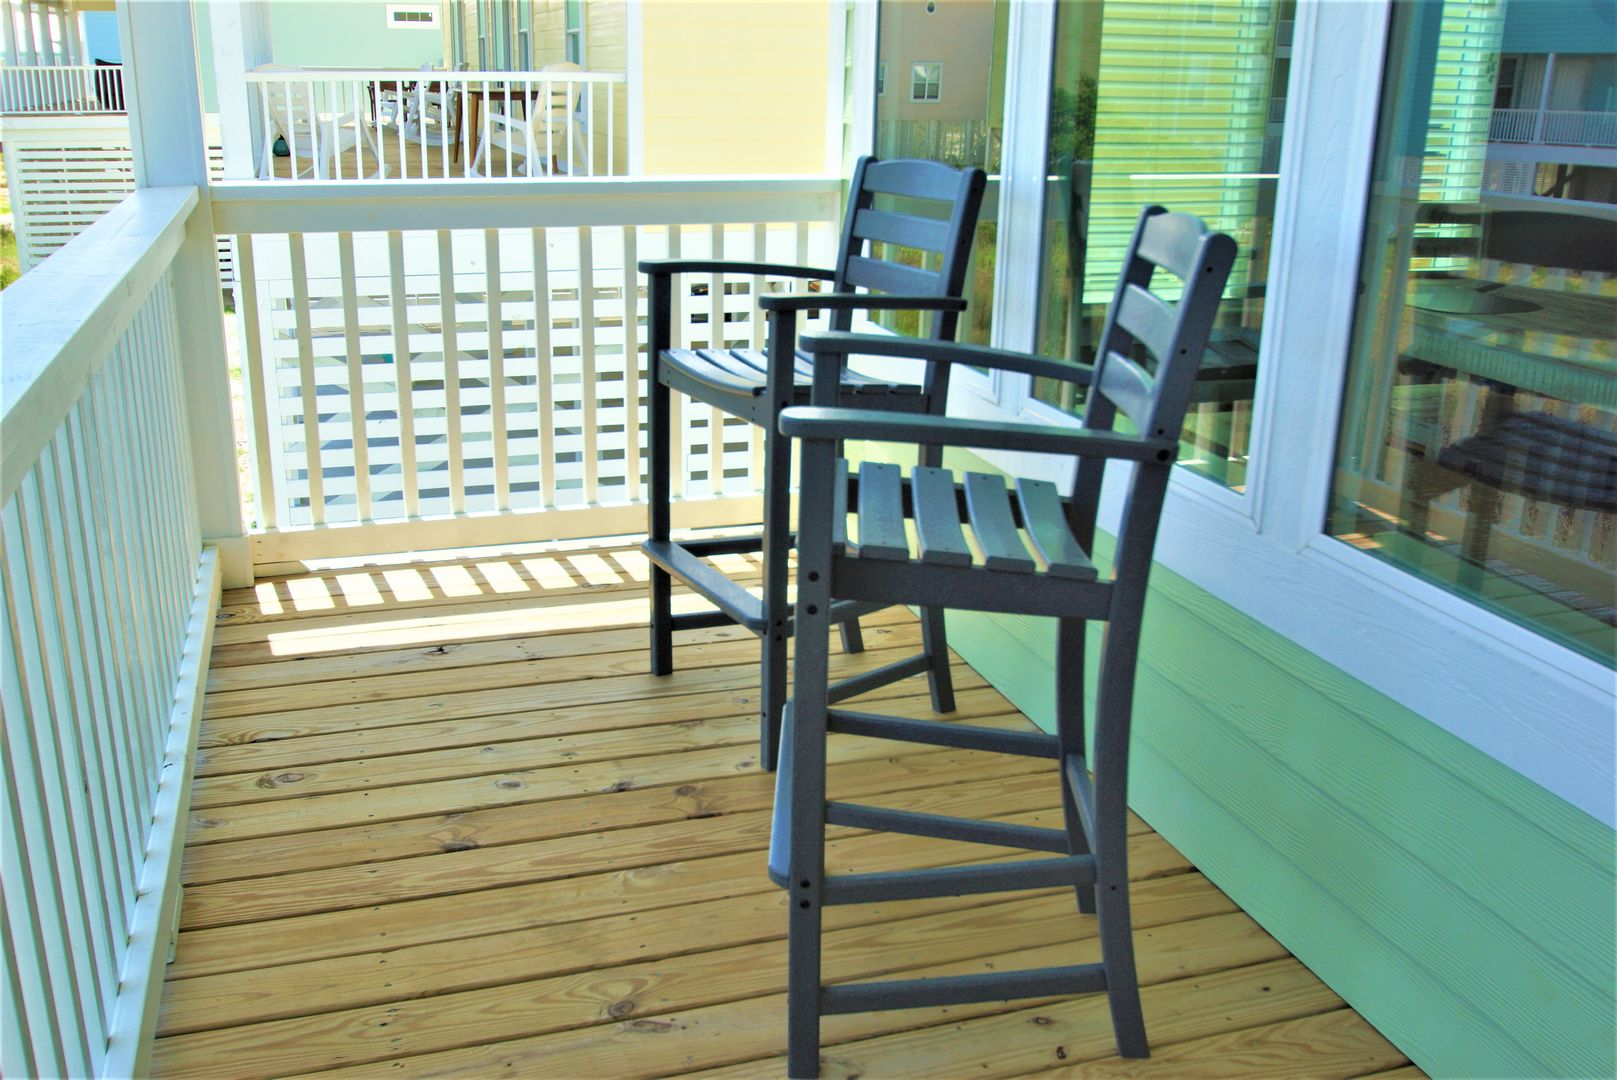 The High Rise Chairs Are Perfect for Enjoying the Sights of the Gulf